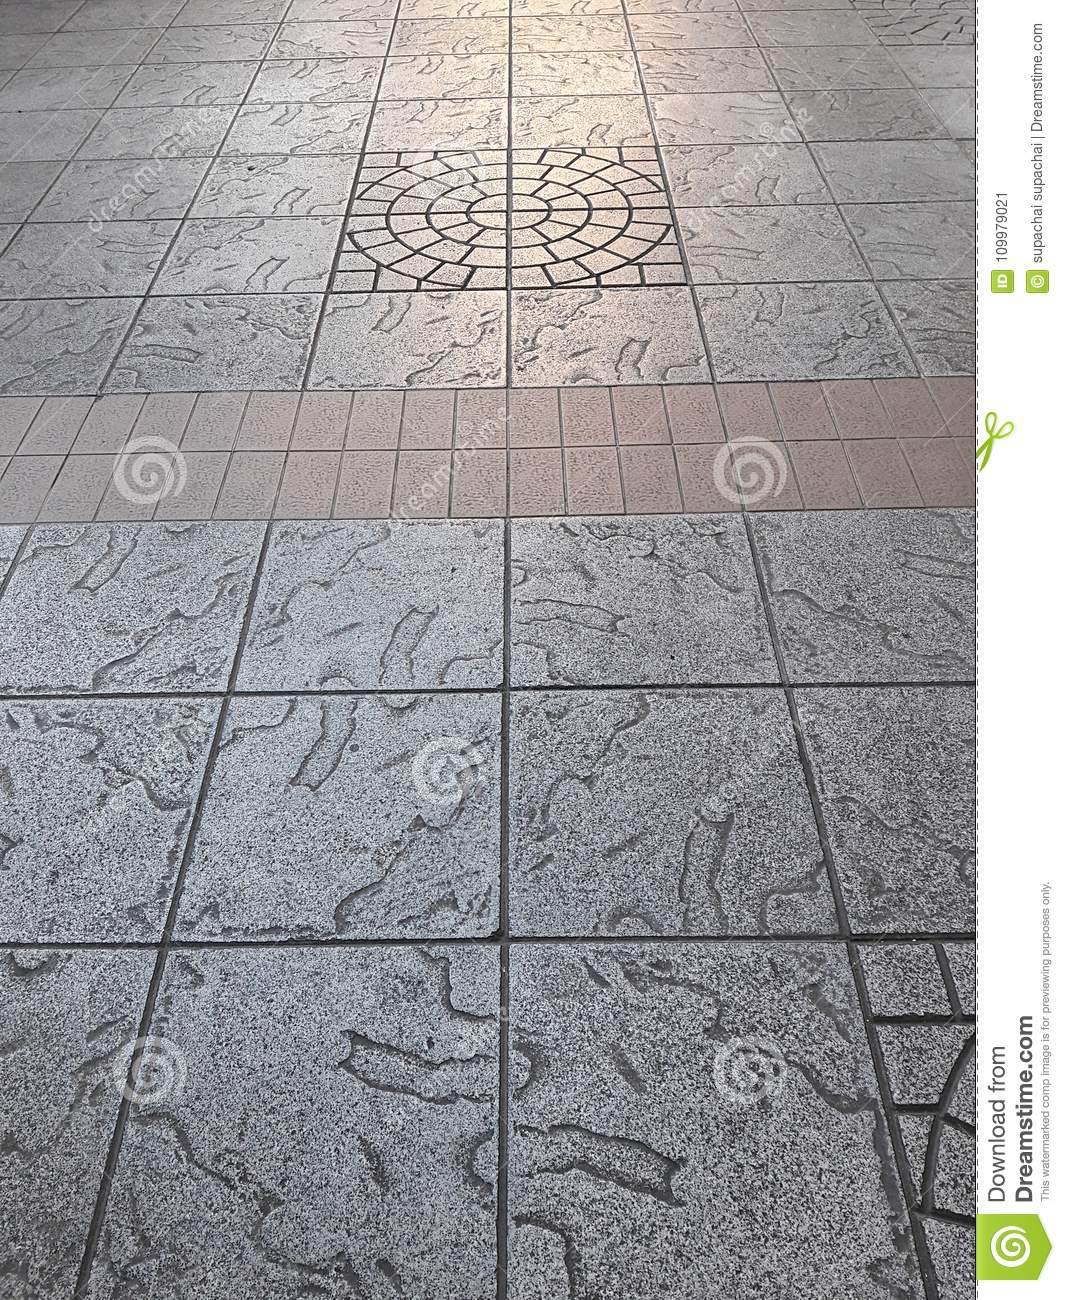 Office floor texture Glossy Floor Road Tiled Cemented With Cement Pavement Texture Outside The Office Building Pxhere Floor Road Tiled Cemented With Cement Pavement Texture Stock Image